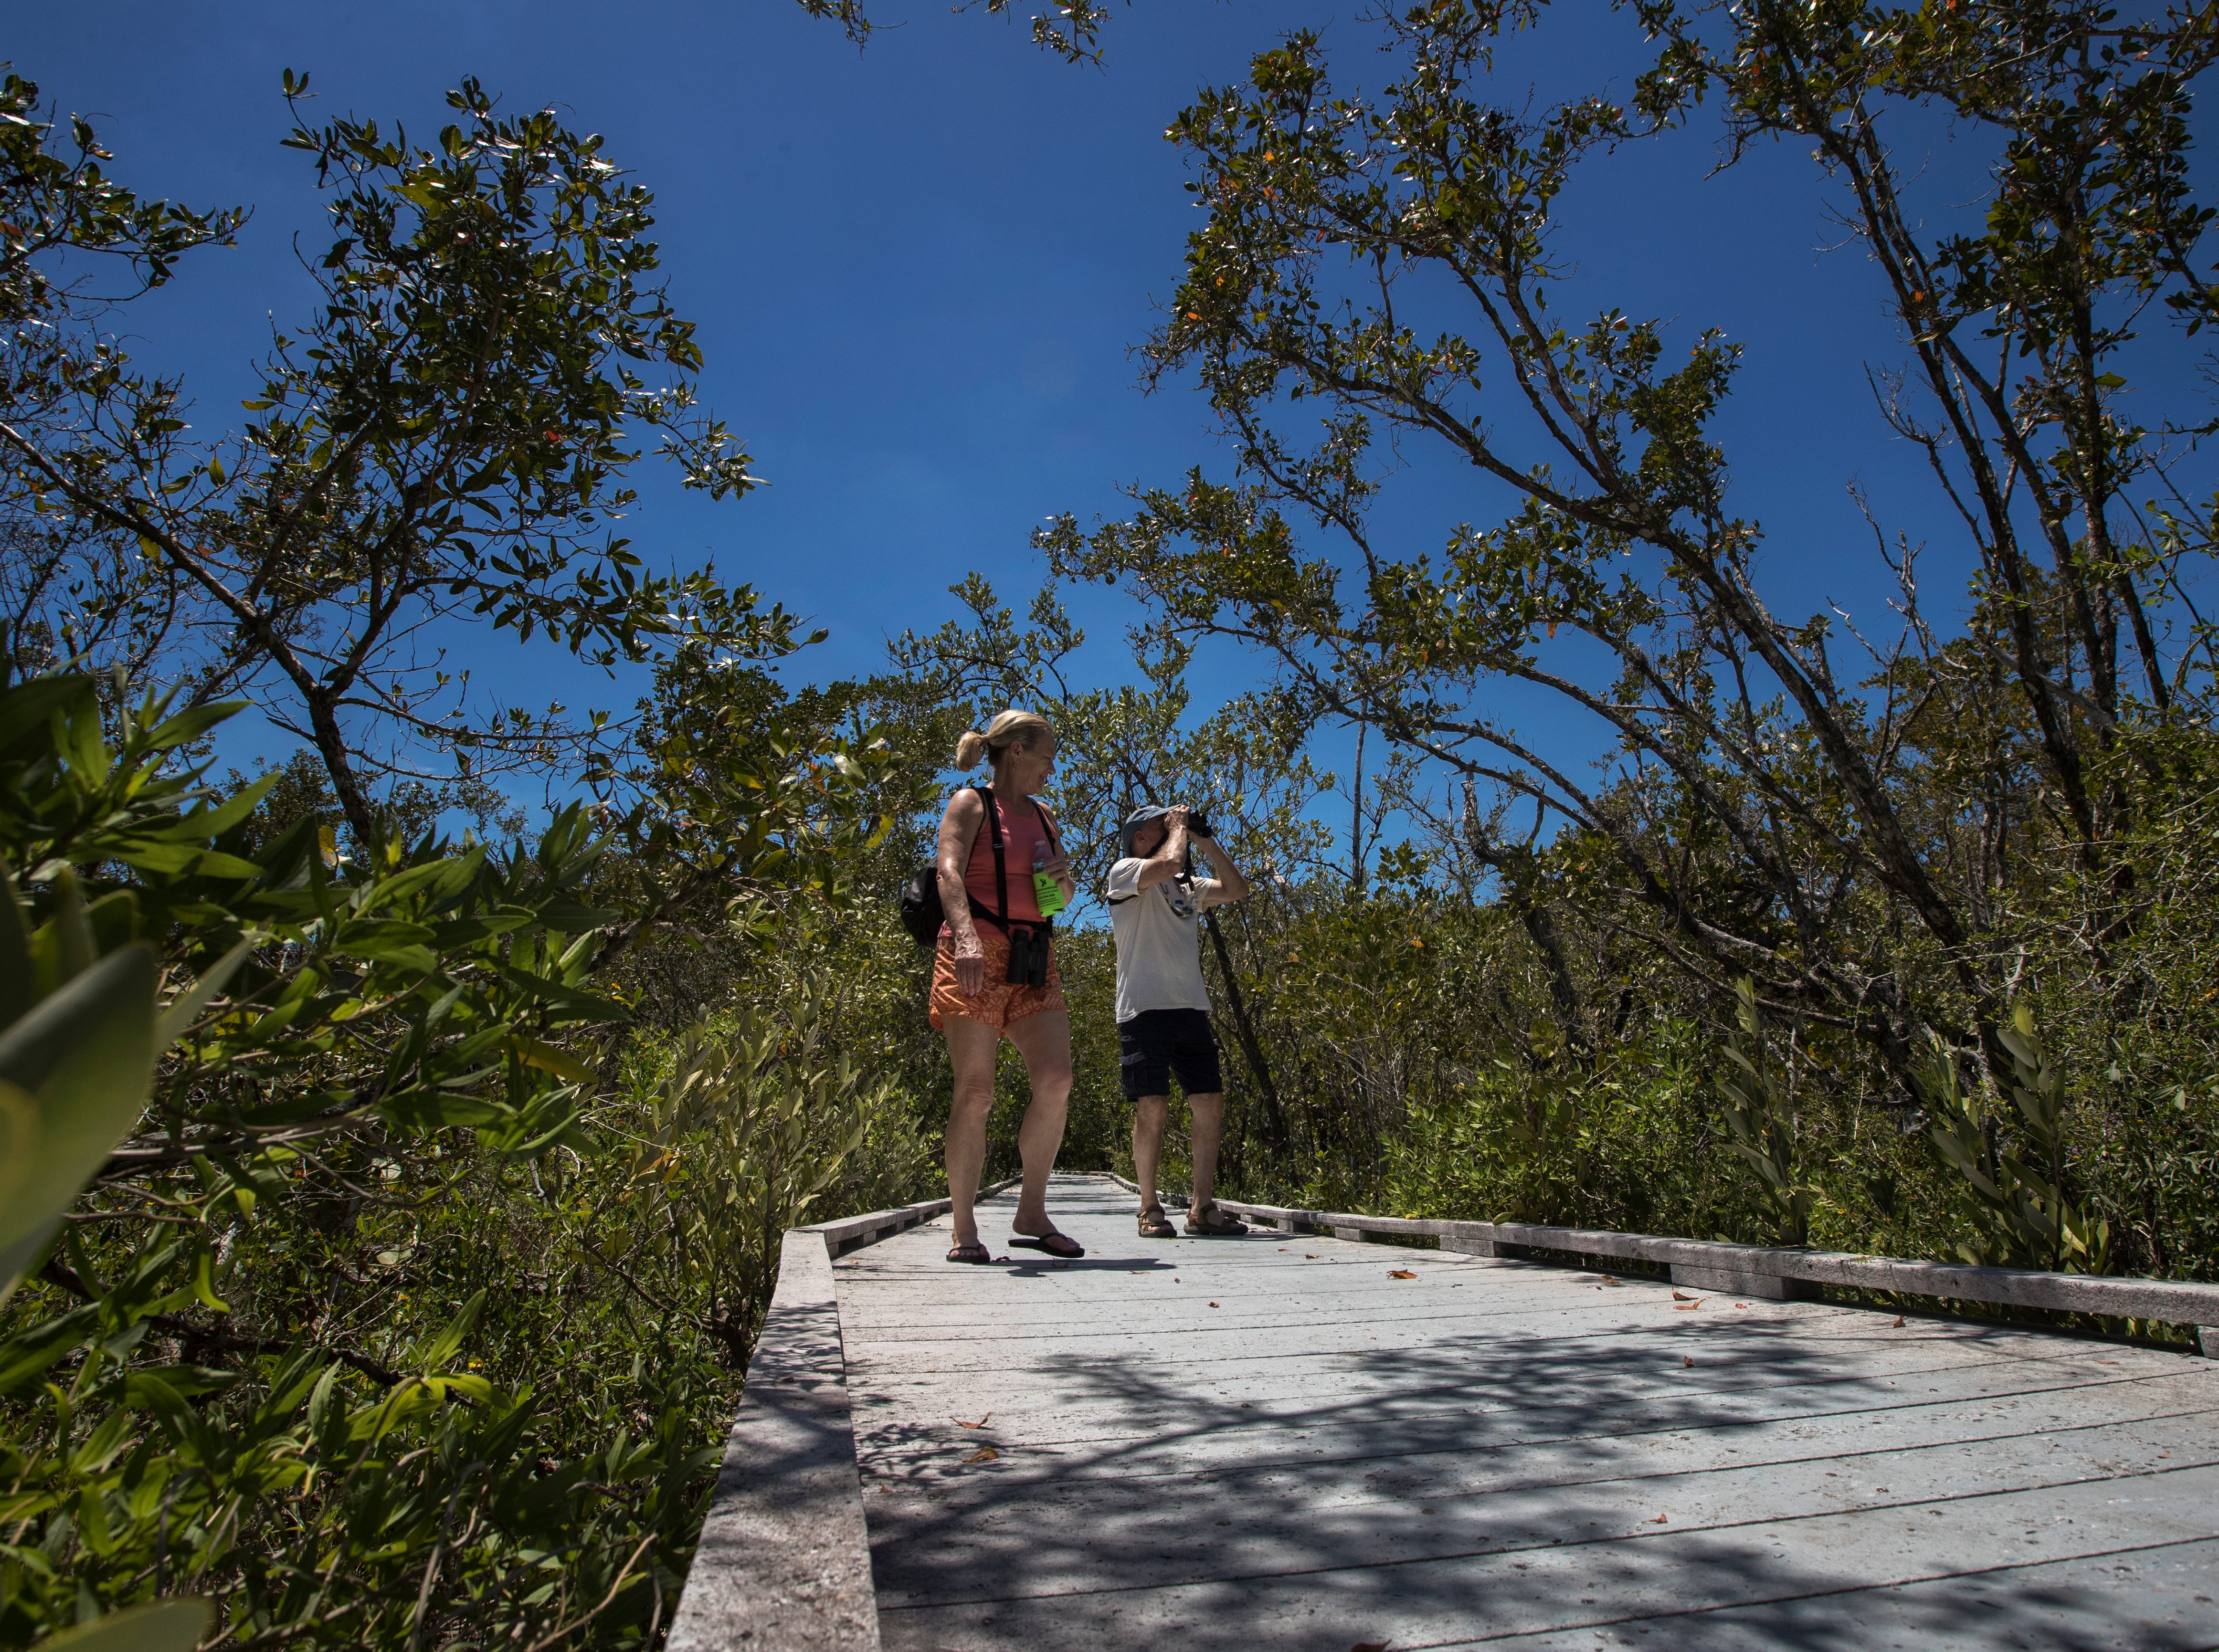 Fort Myers Beach residents Steve and Kim Rogers make their way through the Matanzas Pass Preserve boardwalk trail Tuesday afternoon, April23, 2019. The preserve is scheduled to undergo new upgrades.